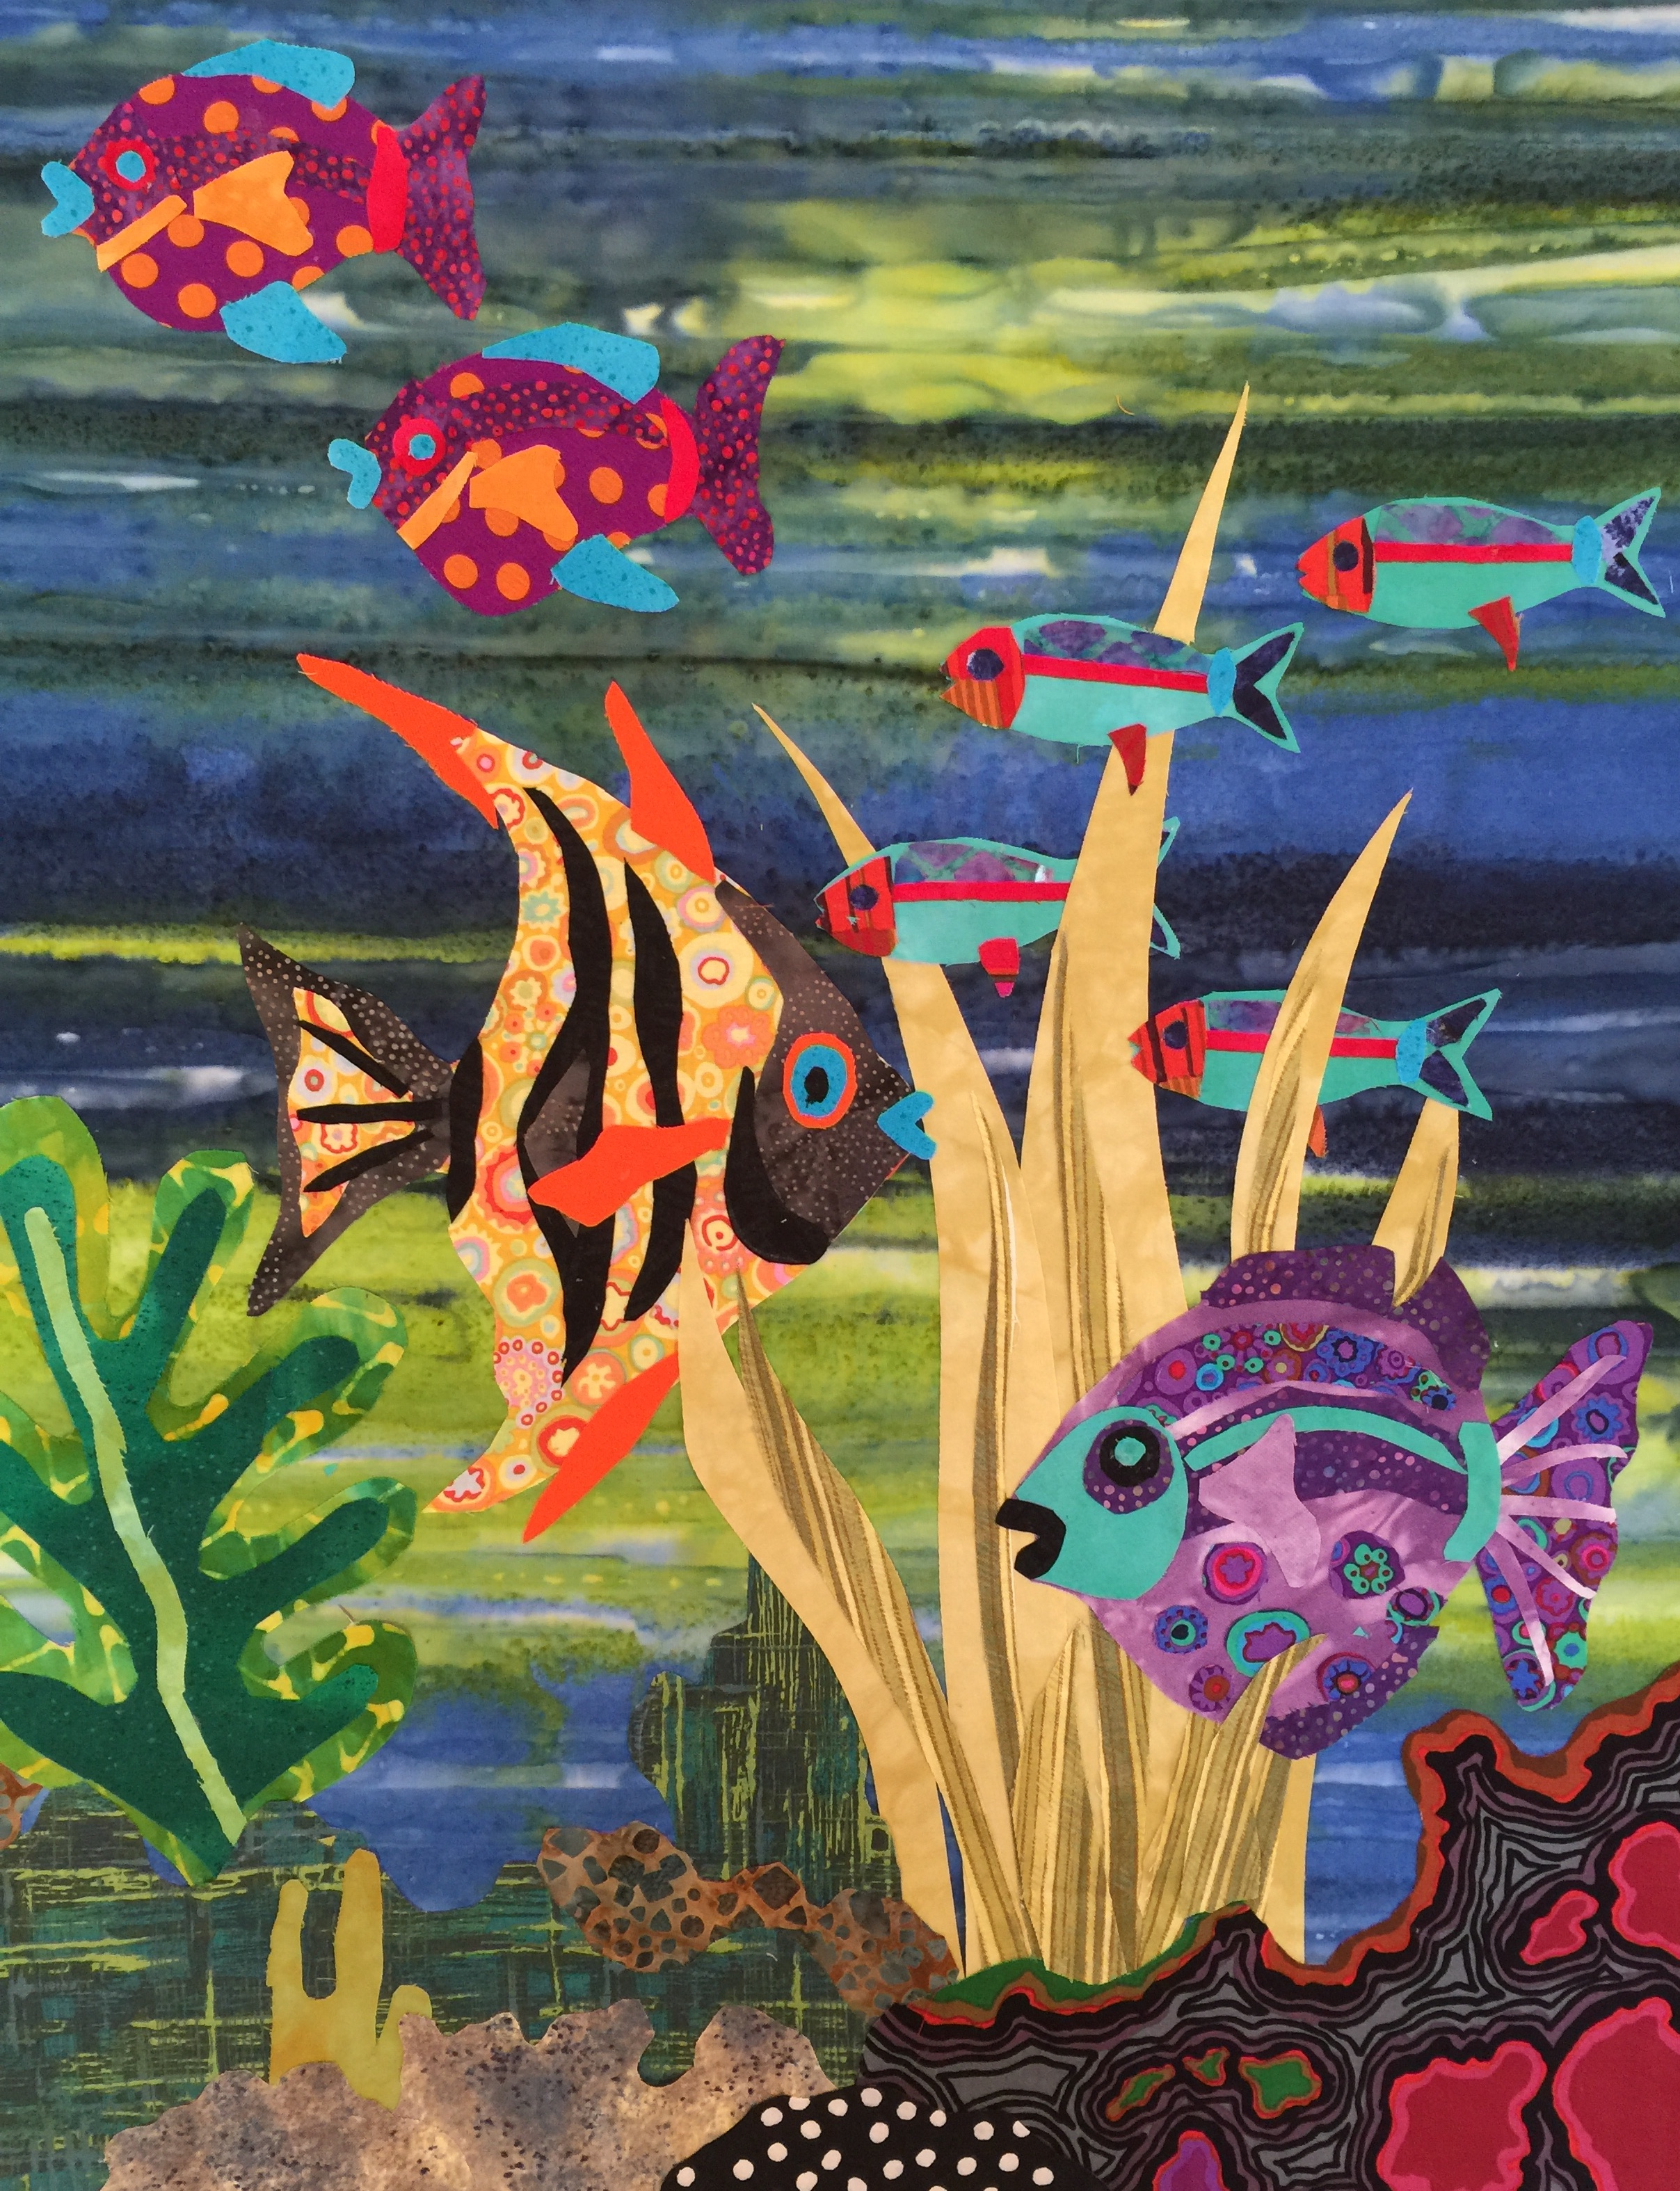 Fabulous Fish working with smaller fish on a decorative background